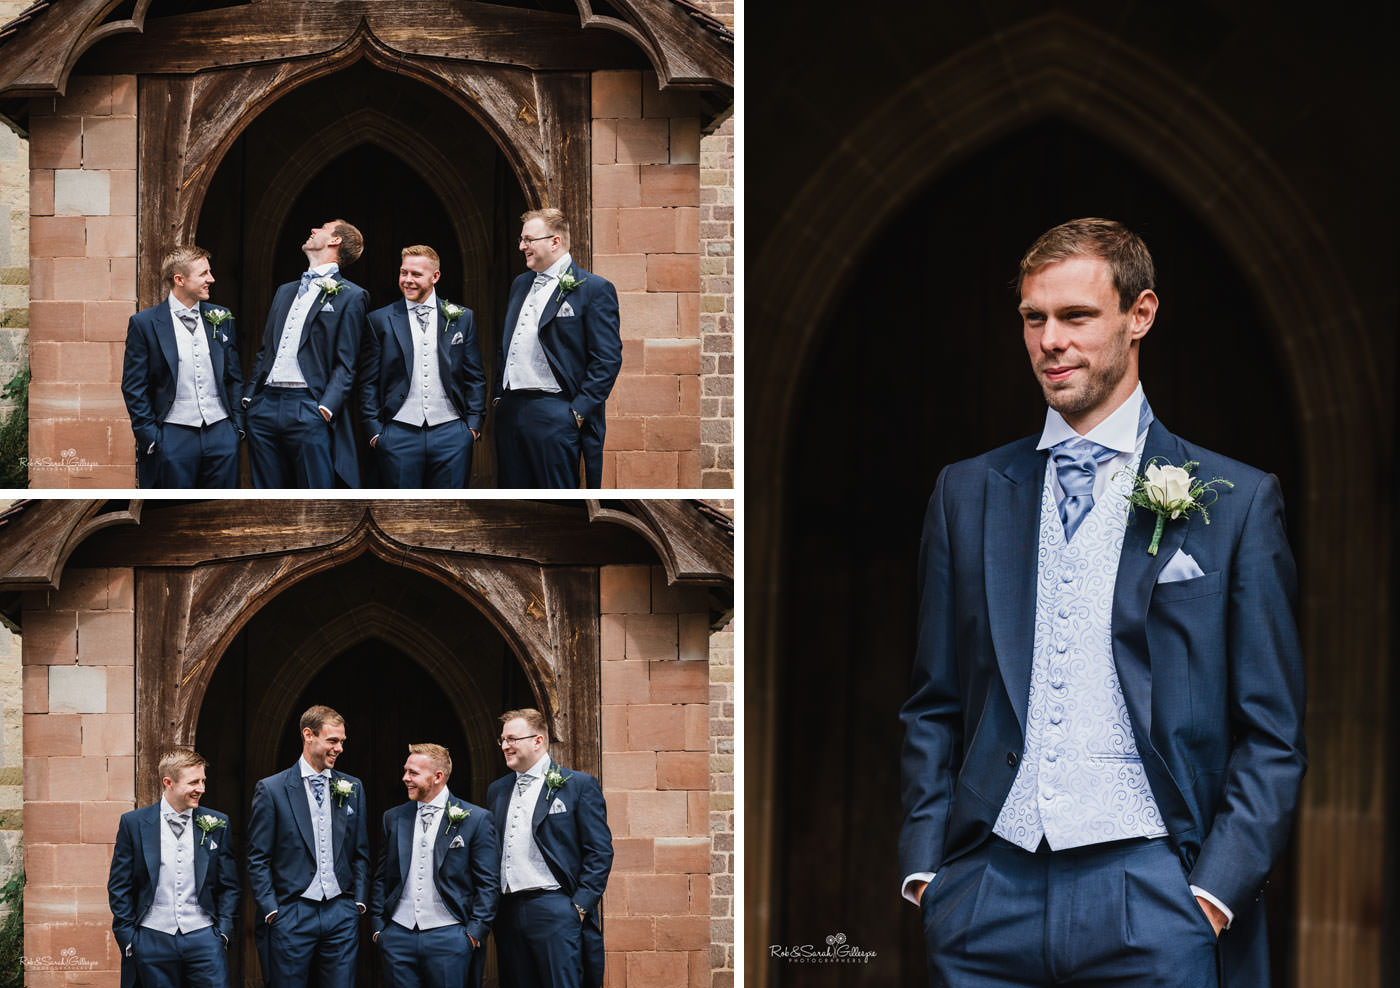 Groom and groomsmen portrait at St Peter's Church in Diddlebury